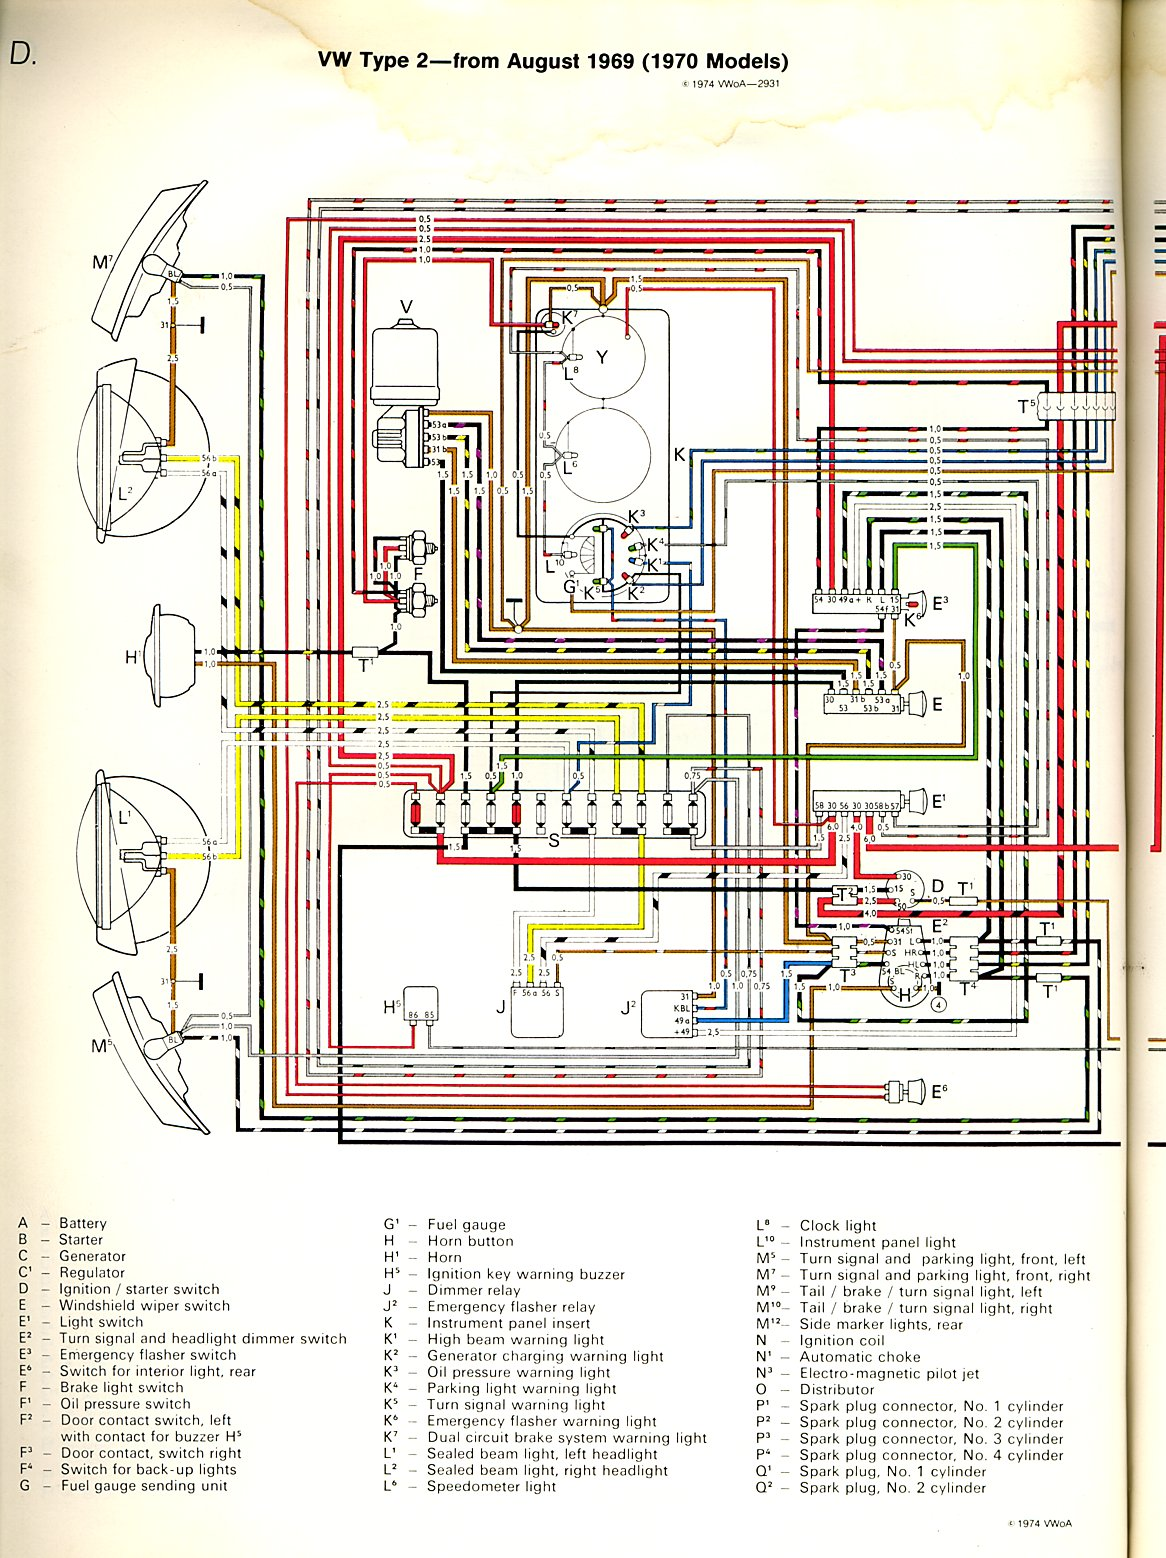 TheSamba.com :: Type 2 Wiring Diagrams on points ignition system diagram, ignition schematics, ignition circuit diagram, ignition system honda, magneto ignition system diagram, motorcycle ignition system diagram, automotive ignition system diagram, ignition system circuit breaker, typical ignition system diagram, ignition system in a car, basic ignition system diagram, ignition system operation, electronic ignition diagram, ignition system plug, ford points ignition diagram, intermittent pilot ignition system diagram, ford ignition system diagram, car ignition diagram, ignition condenser purpose, ignition system troubleshooting,